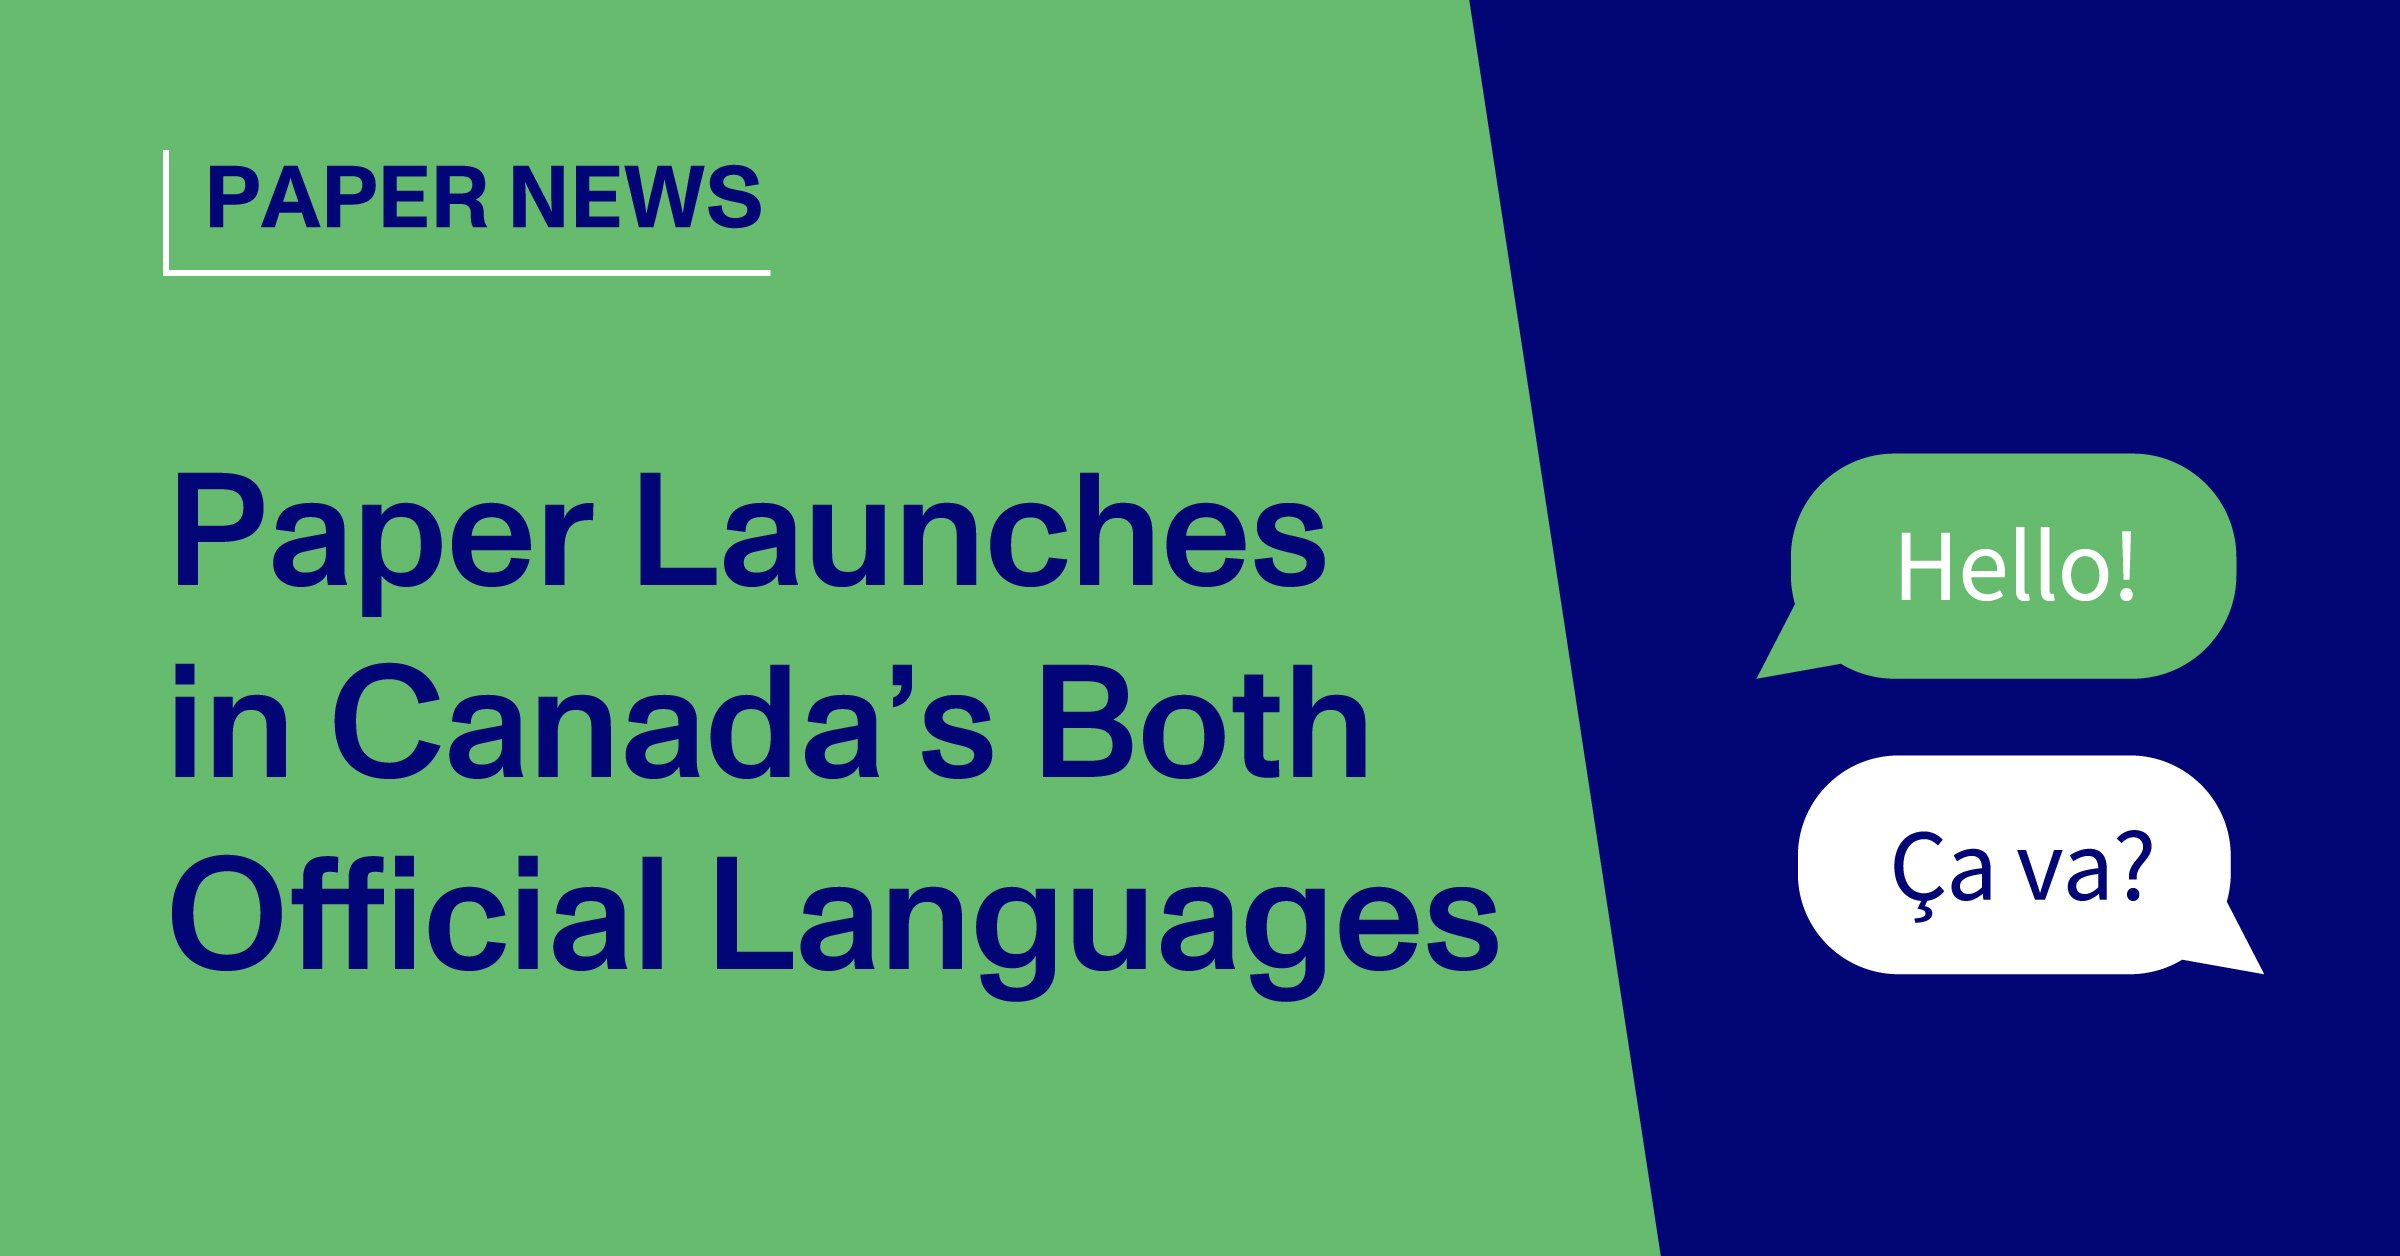 Paper Launches in Canada's Both Official Languages